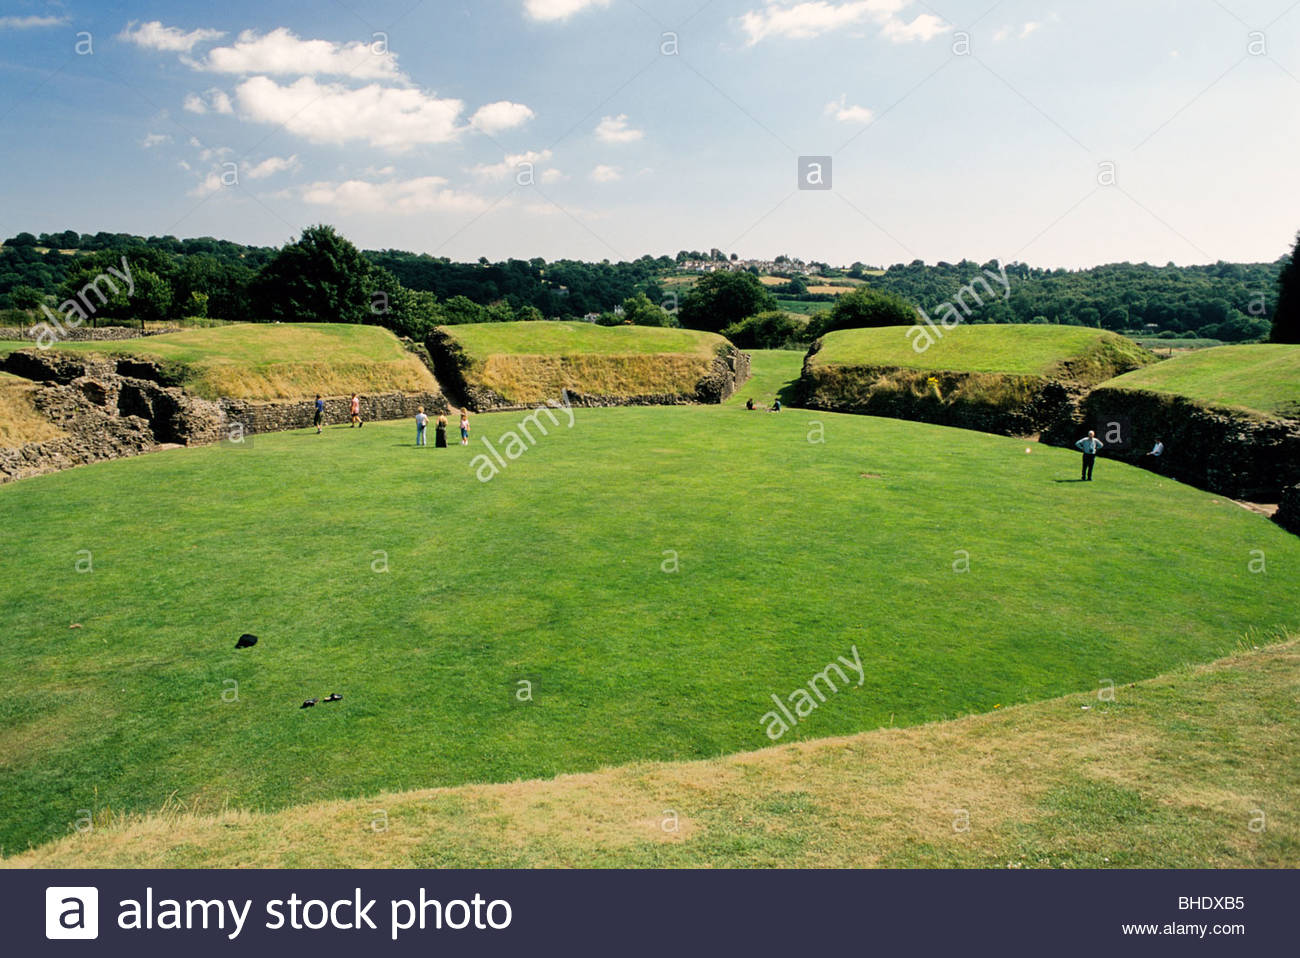 Antique roman amphitheater in Caerleon. Wales, great britain - Stock Image